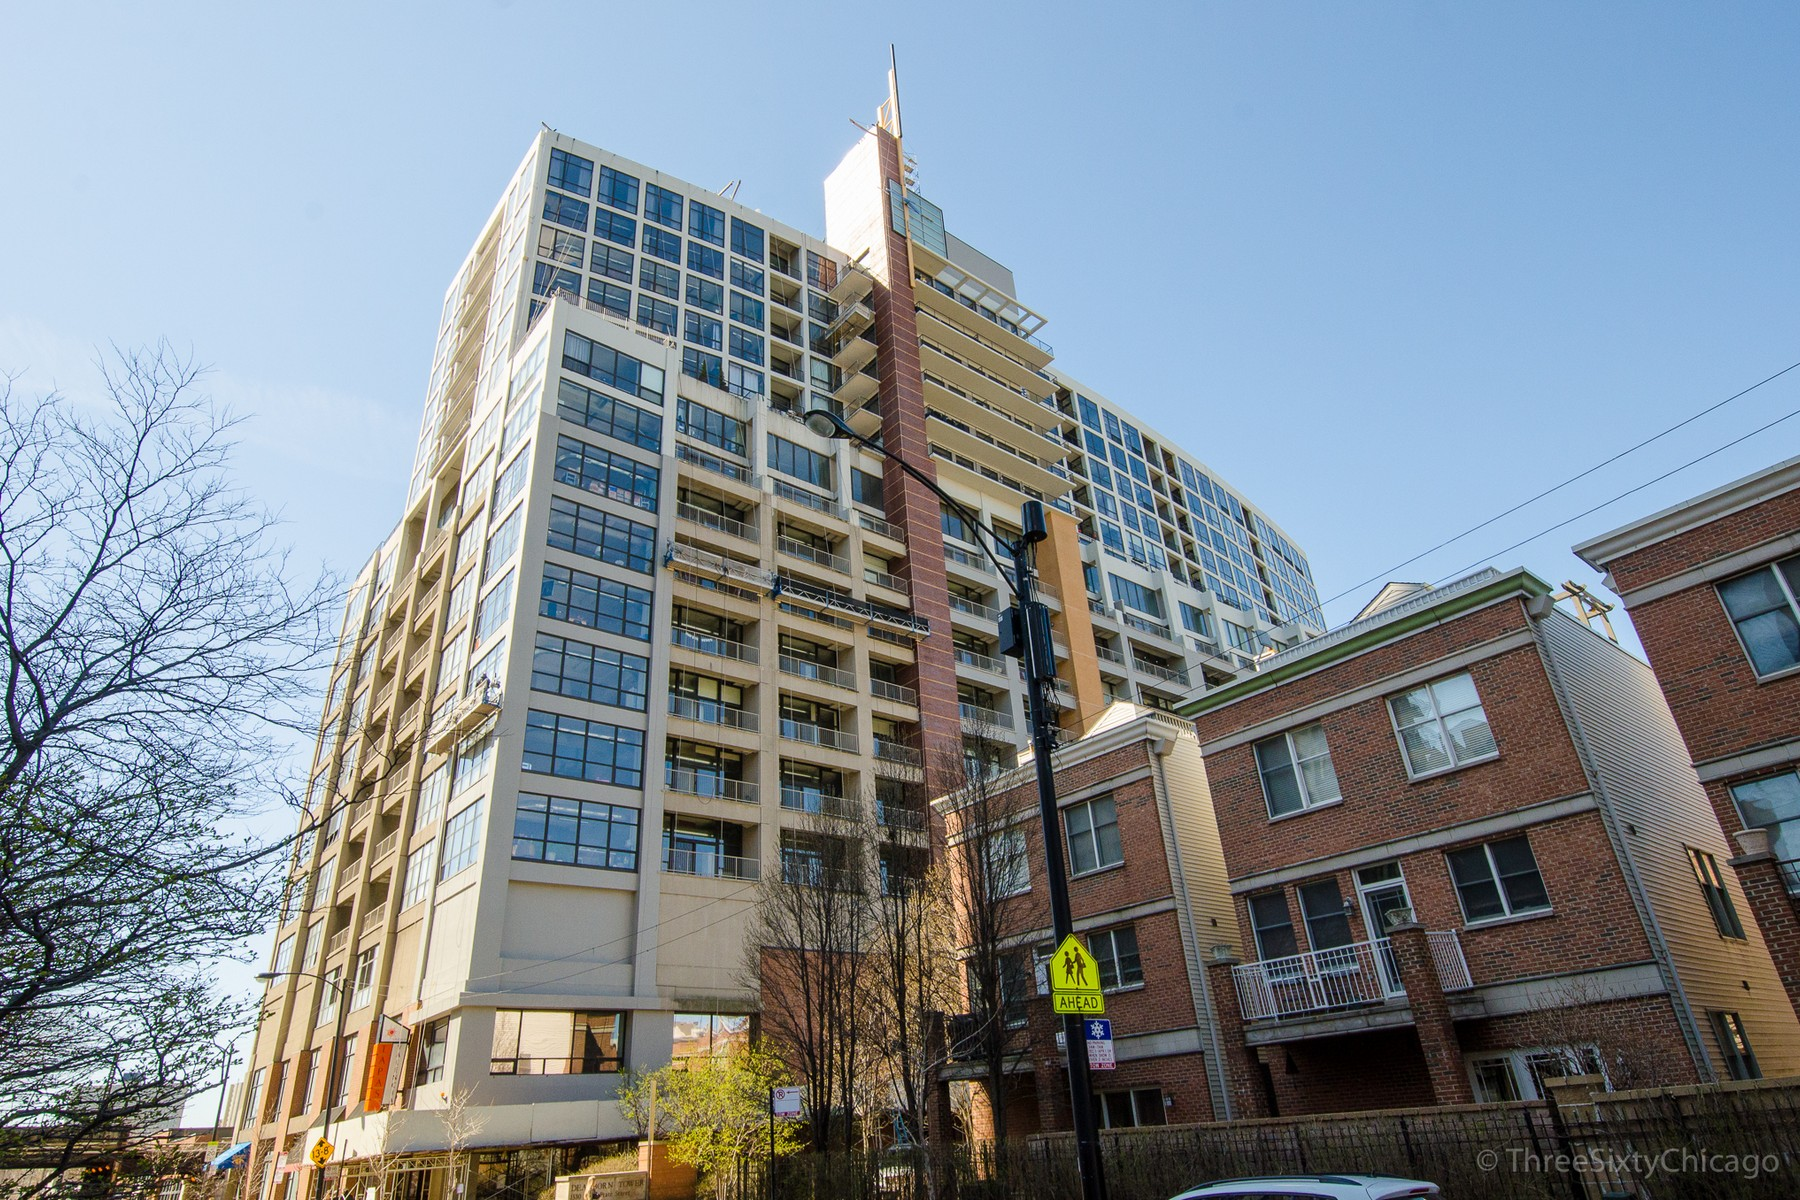 Condominium for Sale at Dearborn Tower 1530 S. State Street, Unit 1005 Near South Side, Chicago, Illinois, 60605 United States